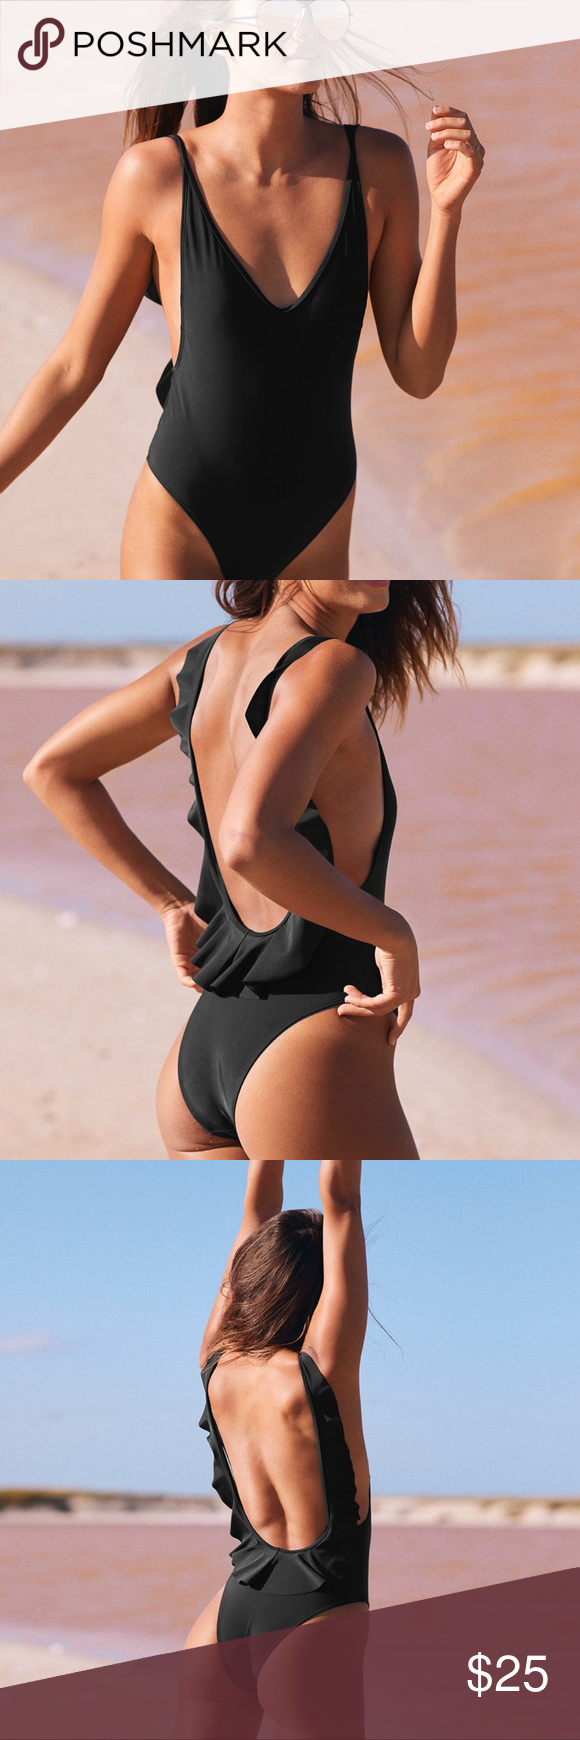 a7977932c93 Black one piece swimsuit by Aerie. Has a ruffle down the straps and the back,  high cut legs, removable padding and a scoop back.